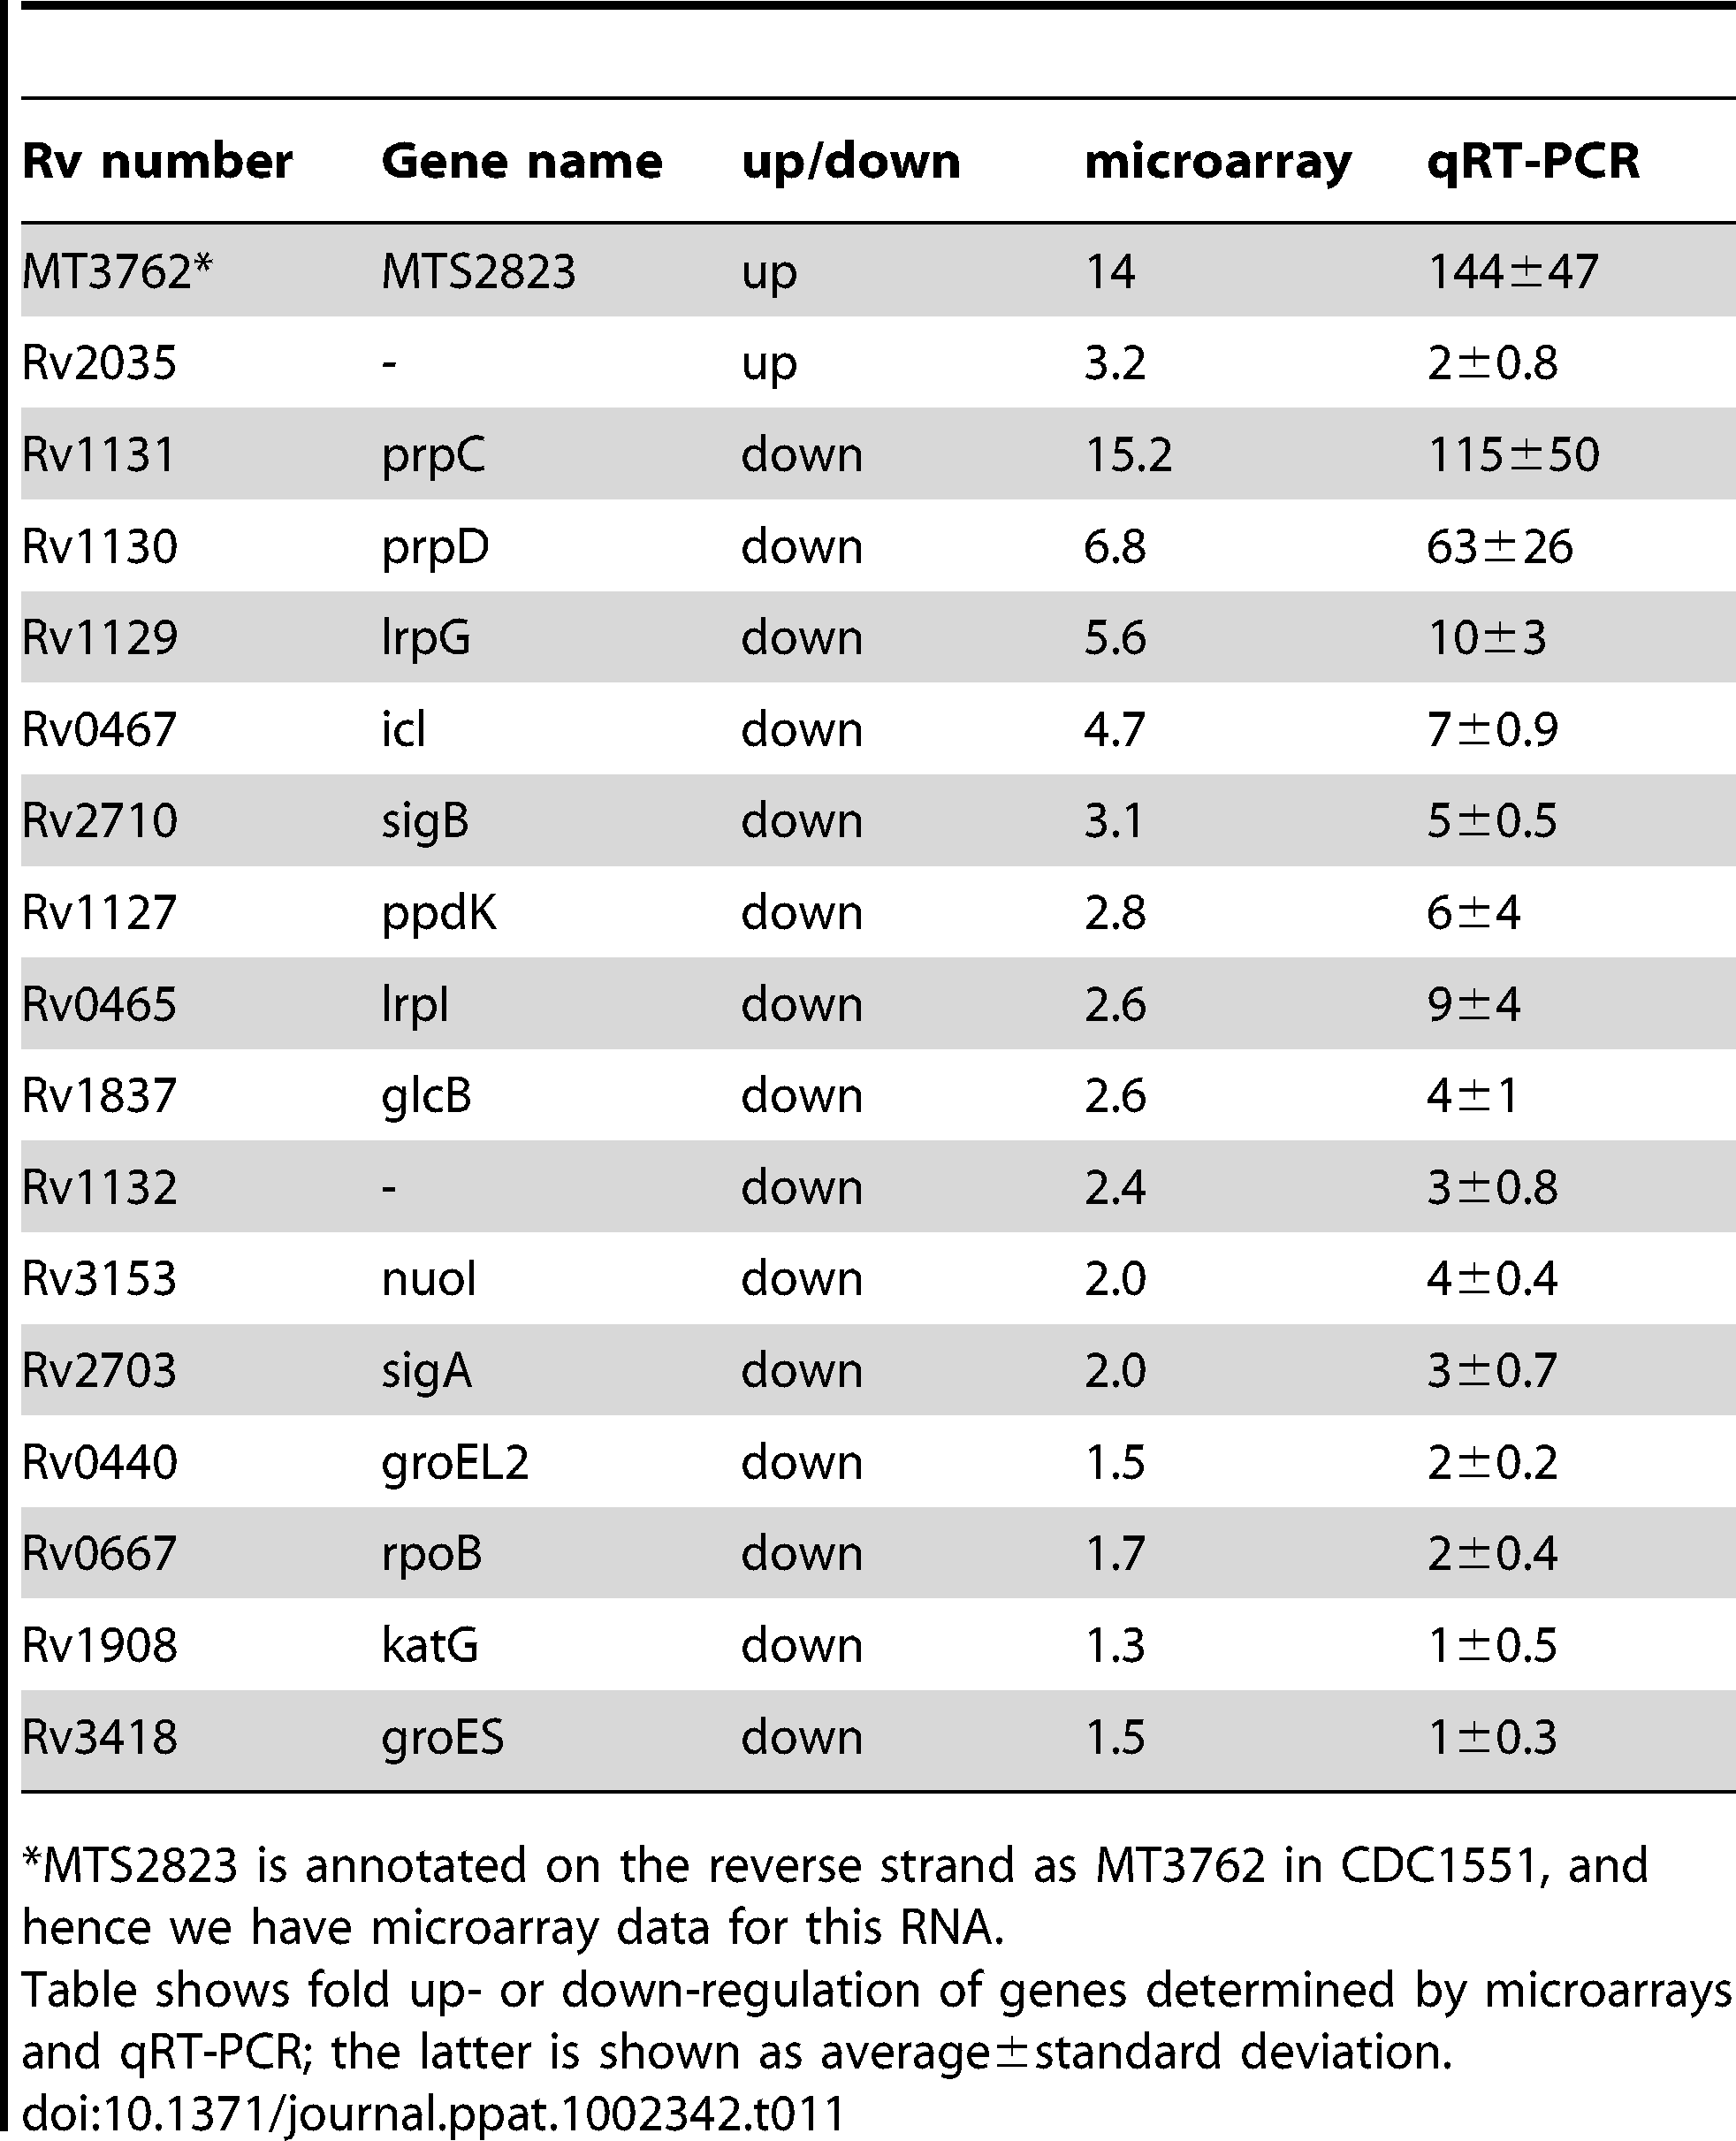 Expression of selected genes upon over-expression of MTS2823.